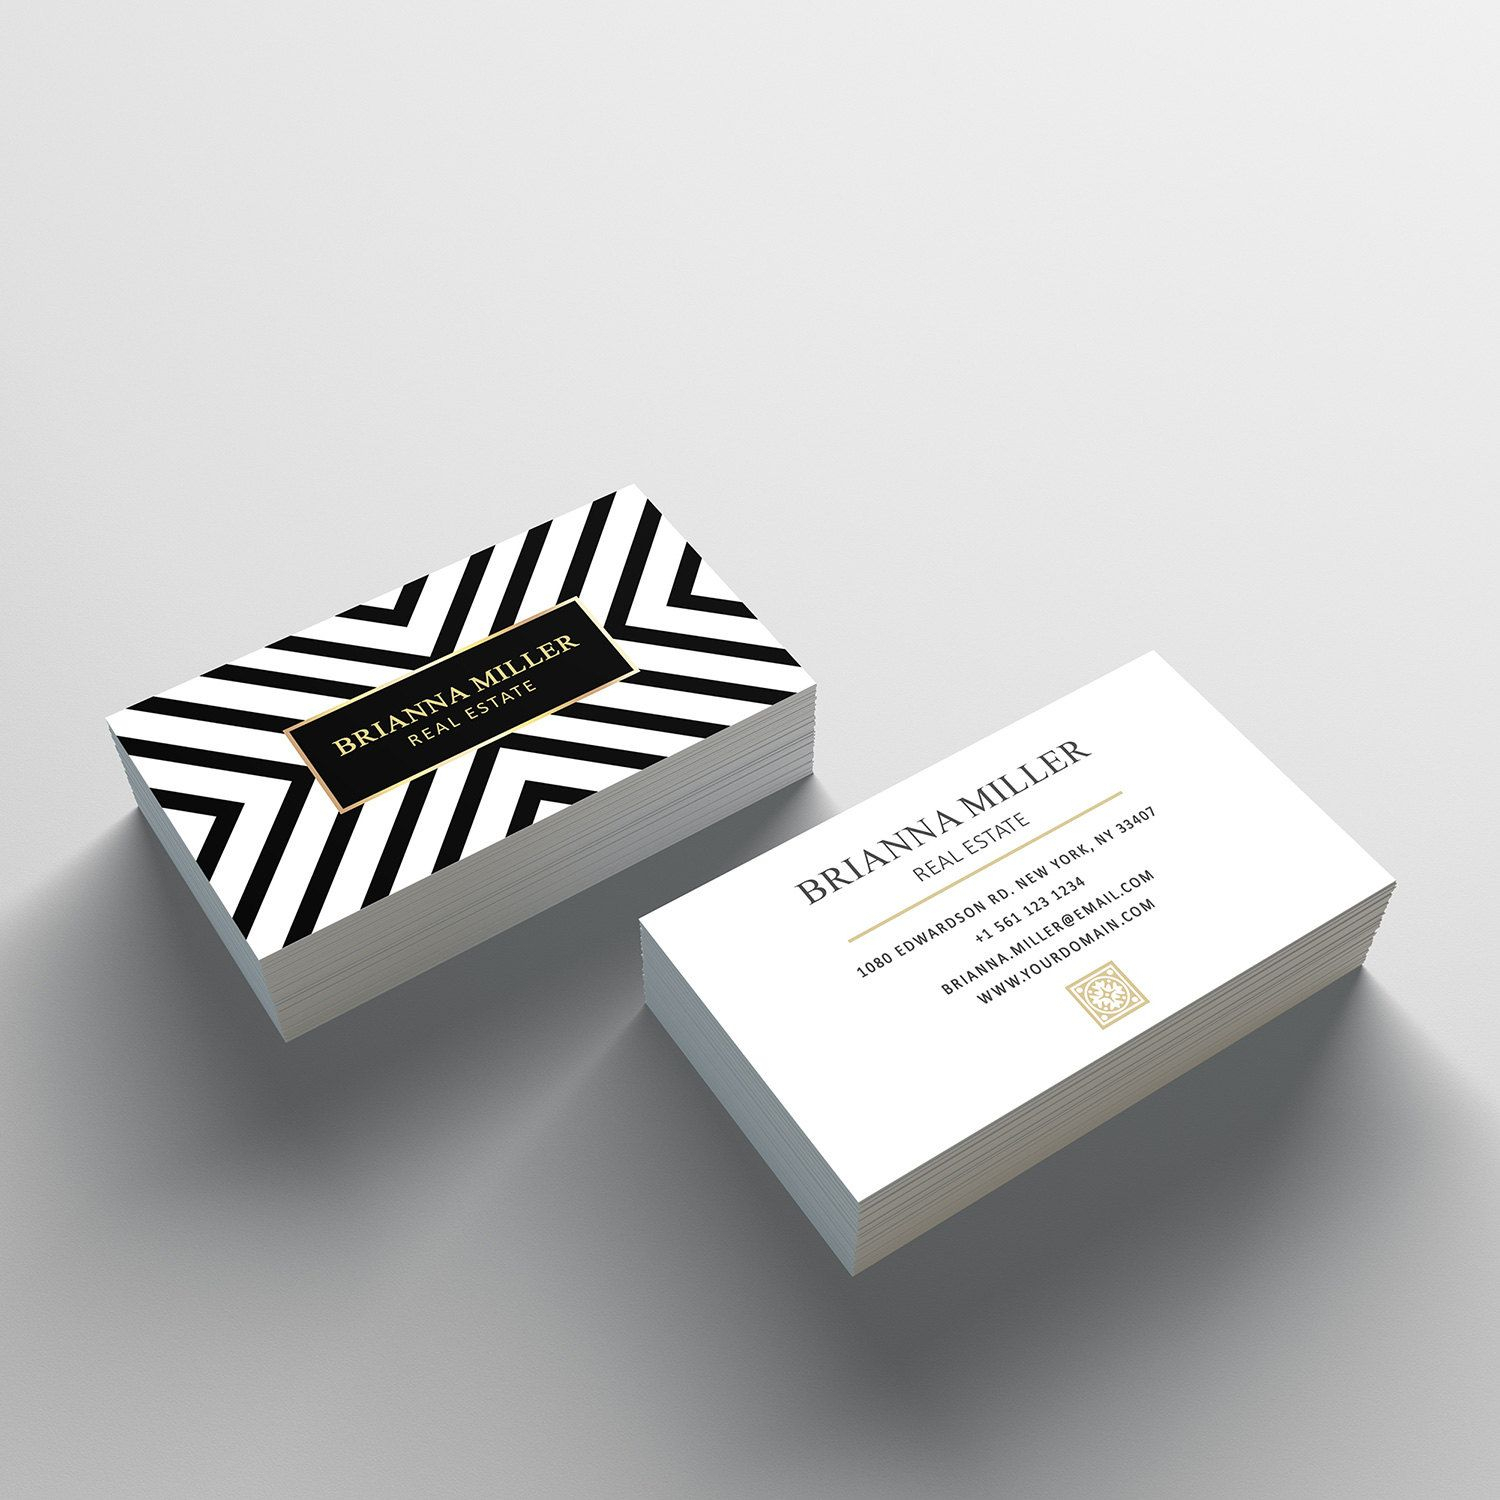 Business Card Template - 2 Sided Business Card Design Intended For 2 Sided Business Card Template Word